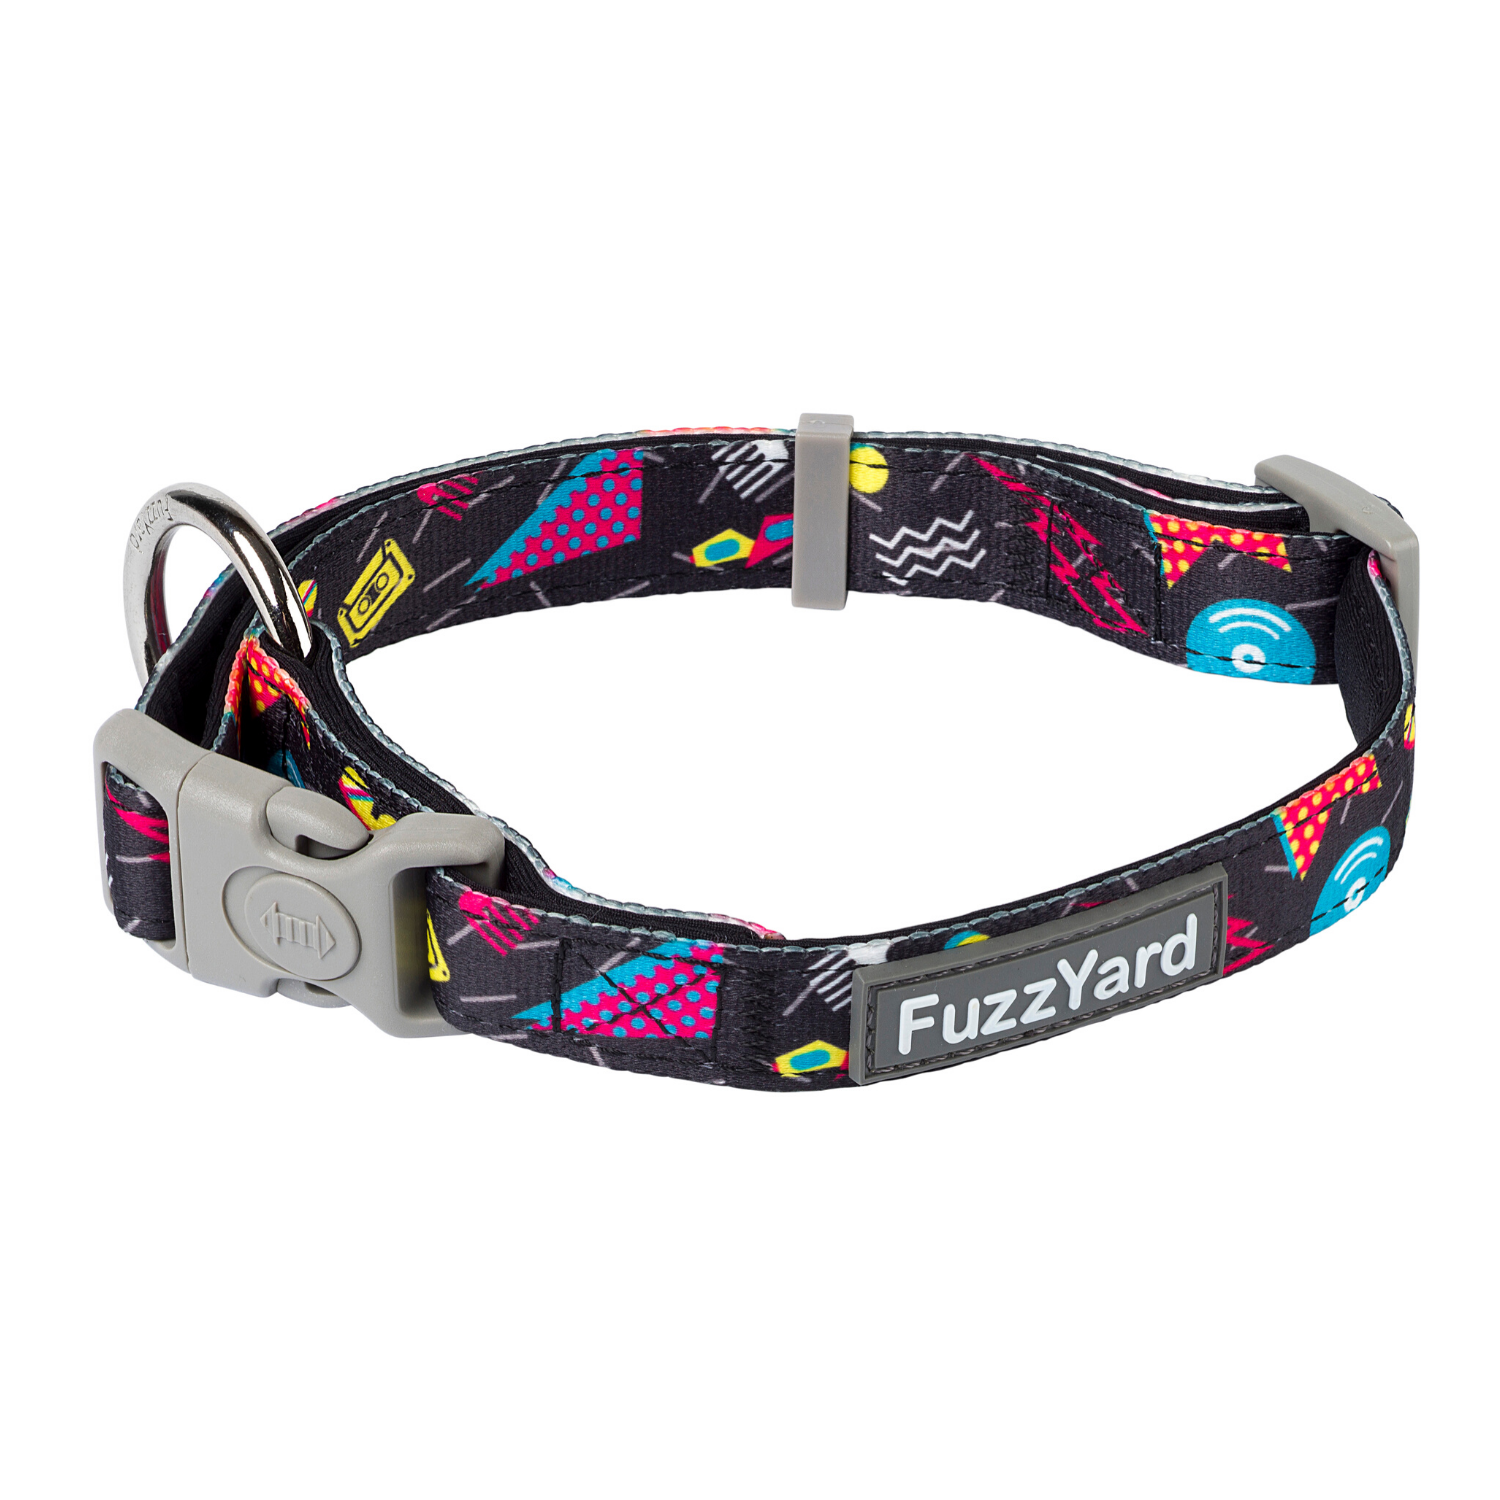 FuzzYard Collar (Bel Air) - S / M / L